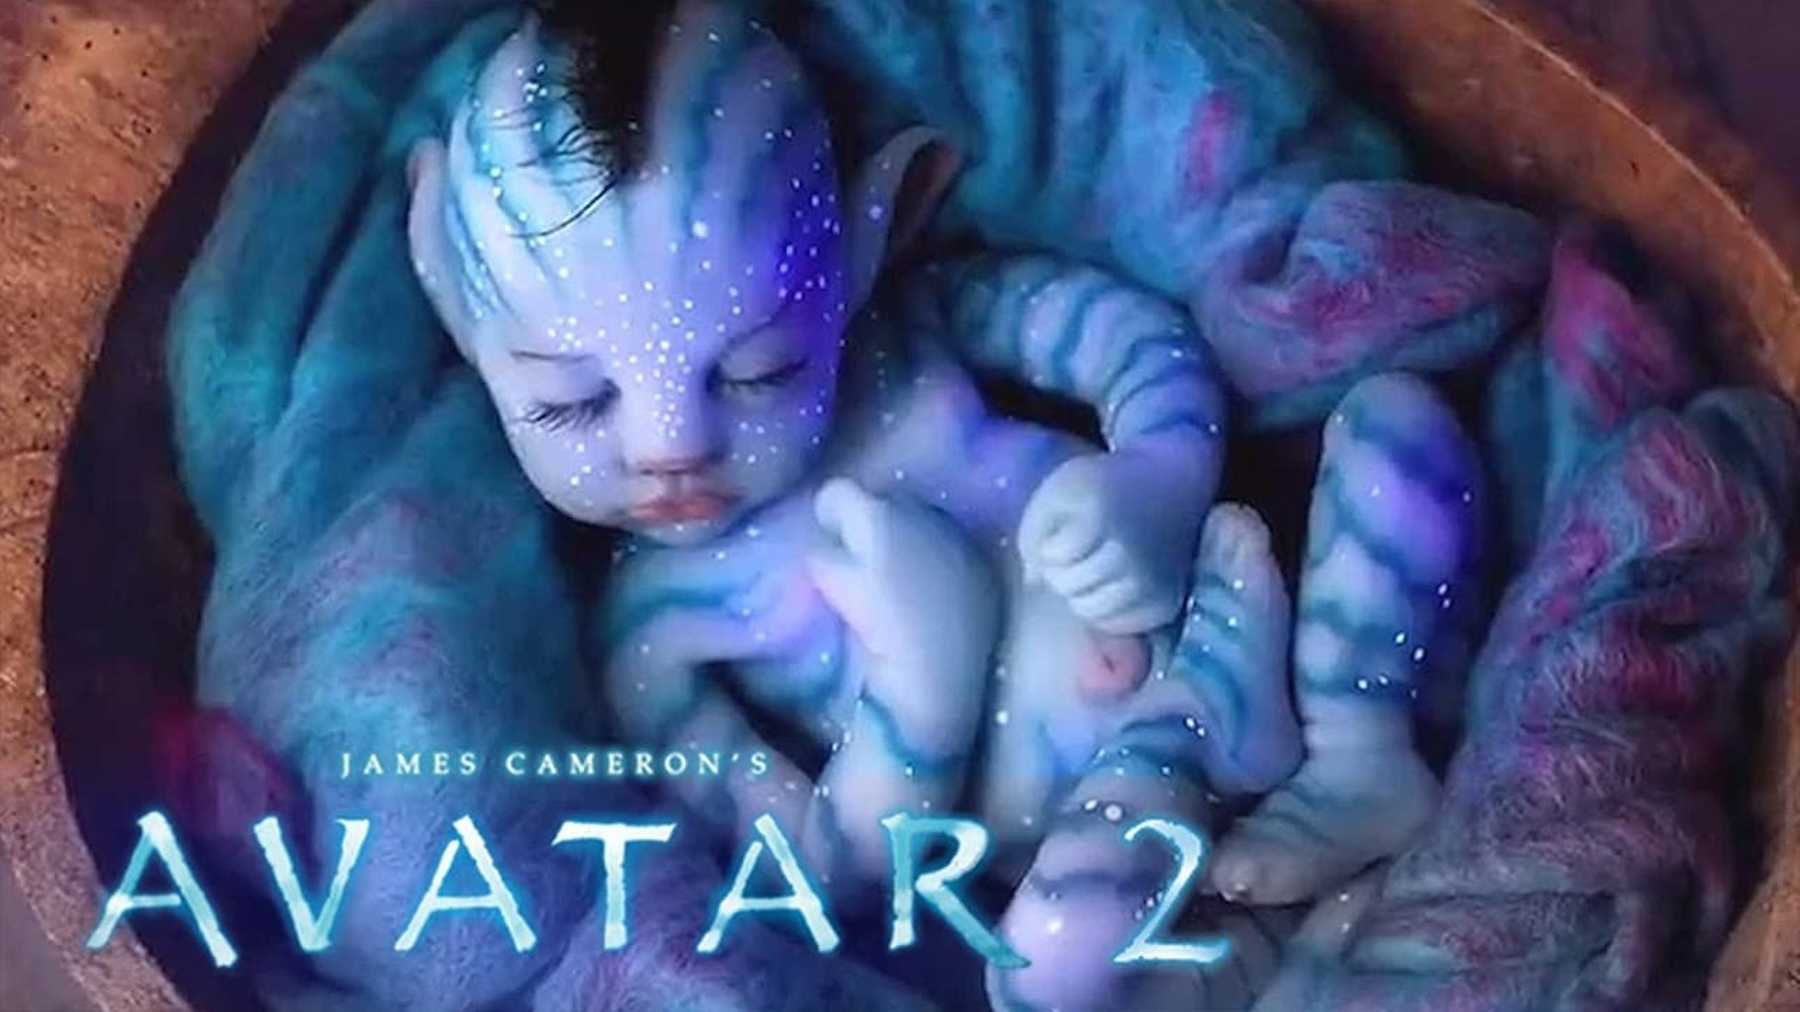 Avatar 2 News & Review | Movies - Empire